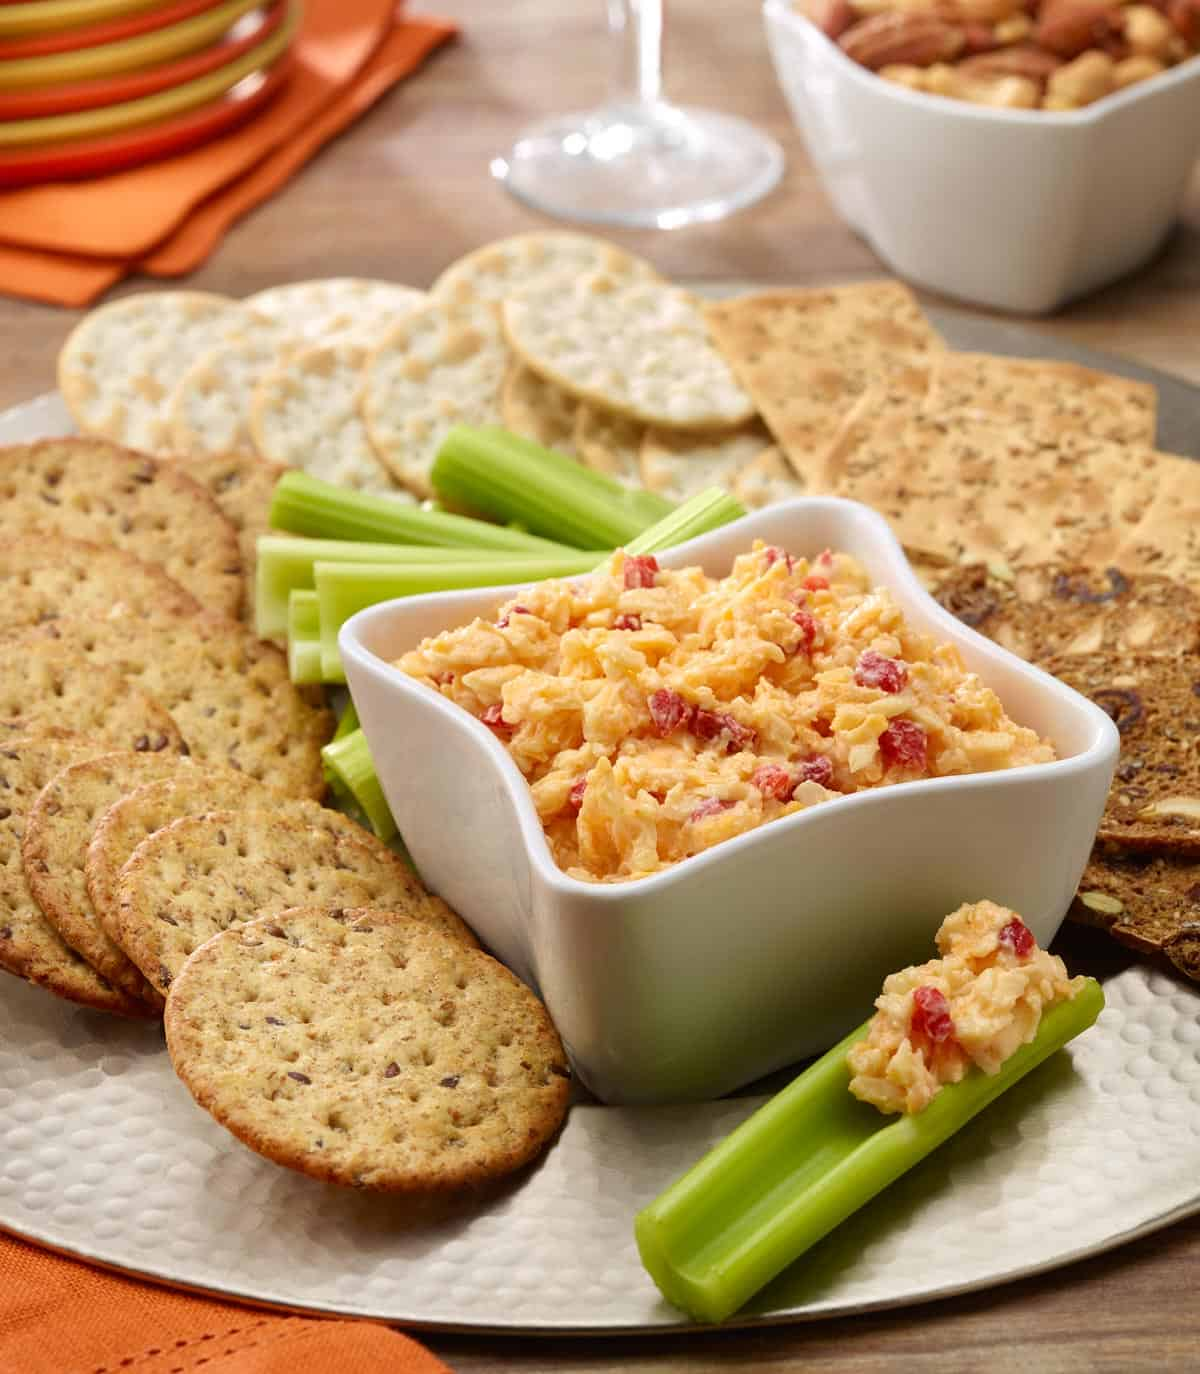 Pimiento cheese spread in a white bowl wih celery sticks and crackers